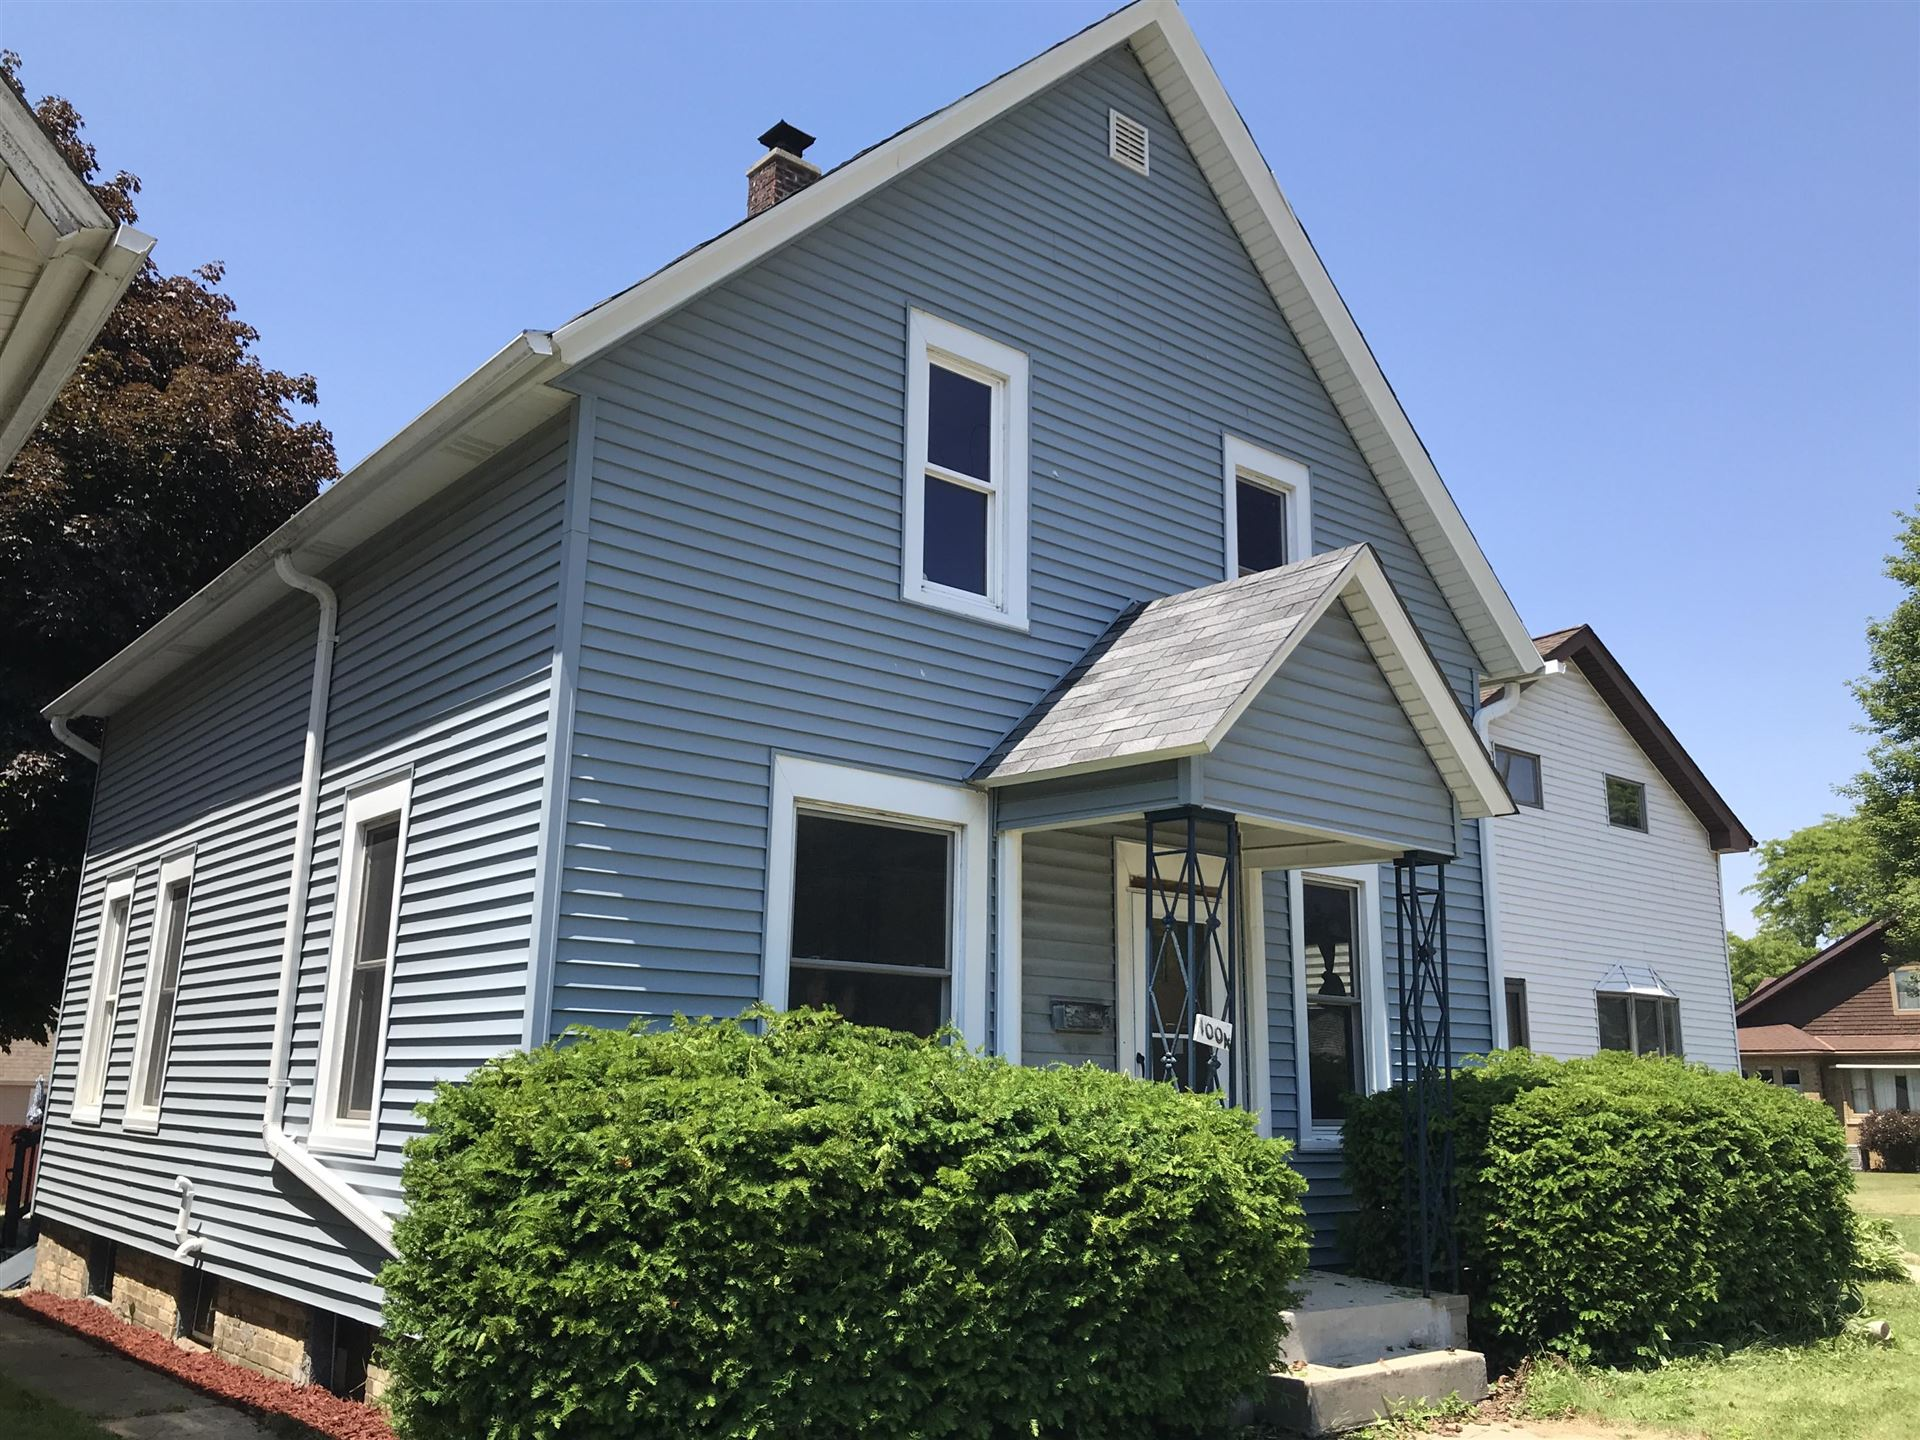 1004 N Chicago Ave, South Milwaukee, WI 53172 - #: 1694413